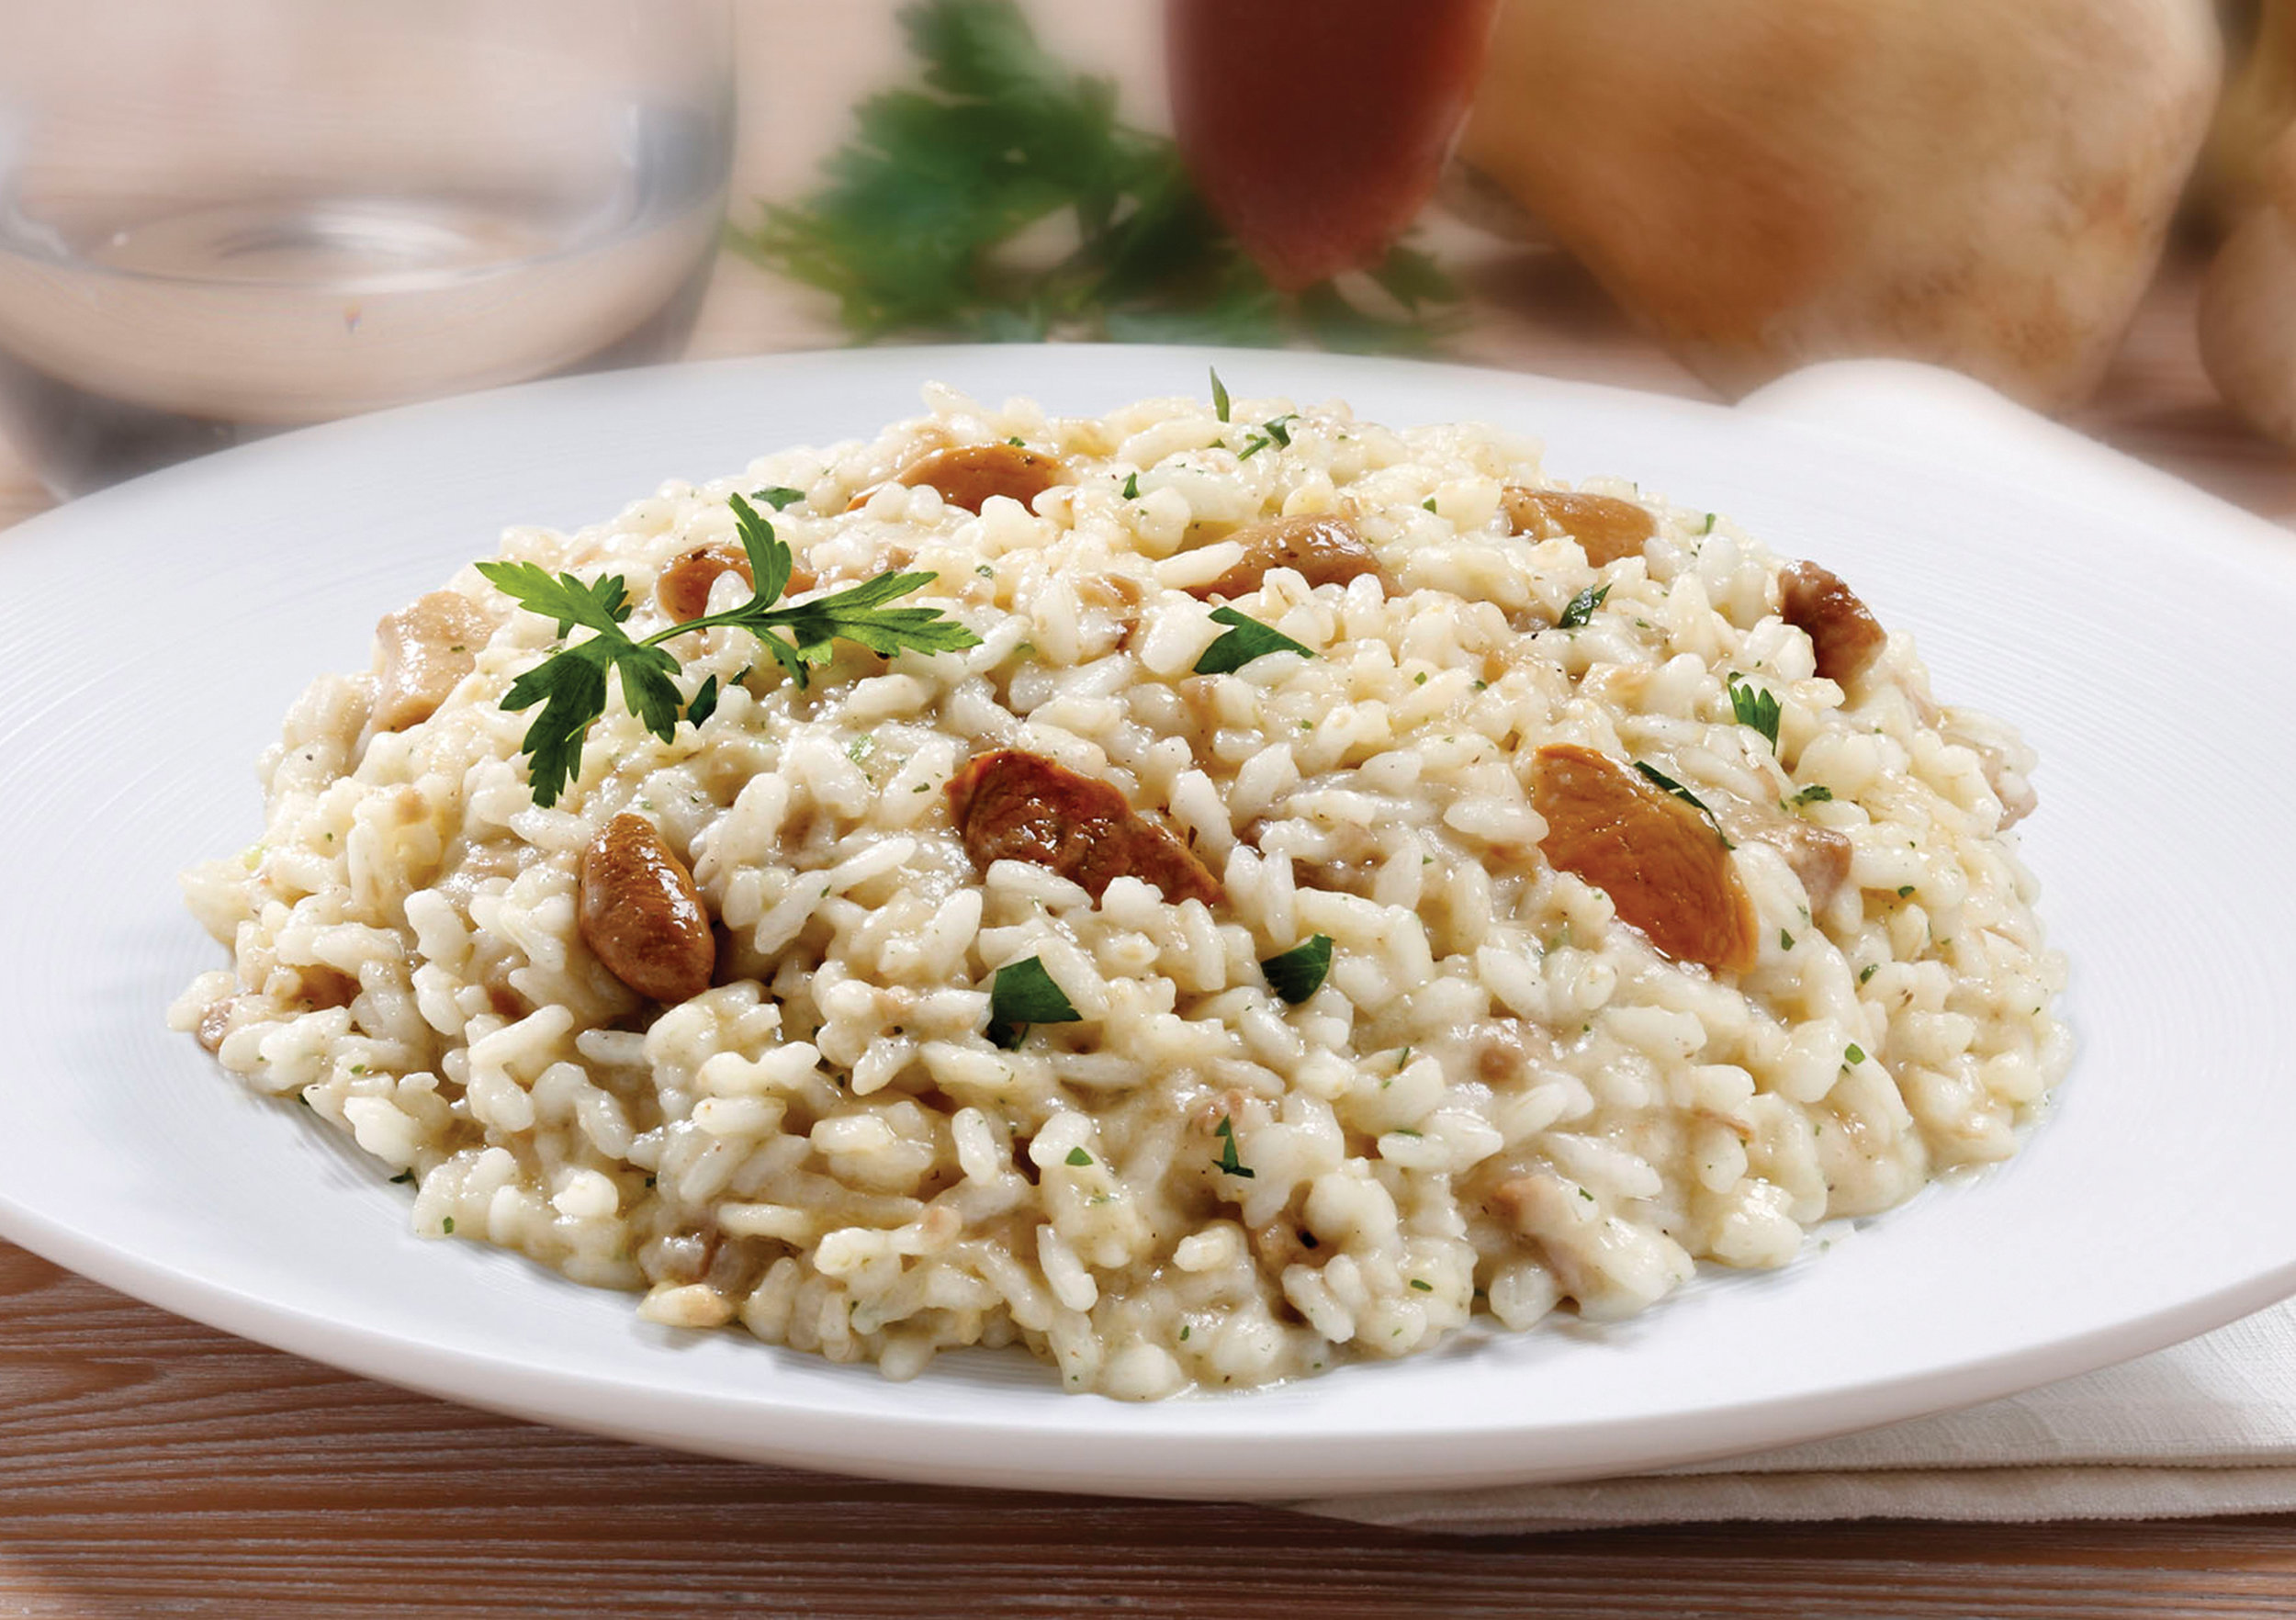 RISOTTO WITH PORCINI MUSHROOMS - This ready to cook and serve Risotto is made with our imported Carnaroli Rice and includes a rich and creamy blend of Grana Padano cheese and fresh Porcini, giving this dish an earthy balance.Item 02013   //  Case Pack: 12/10.58 oz. bags  //  Case Net Wt: 7.9 lbs.  //  Product of Italy  //  MORE INFO